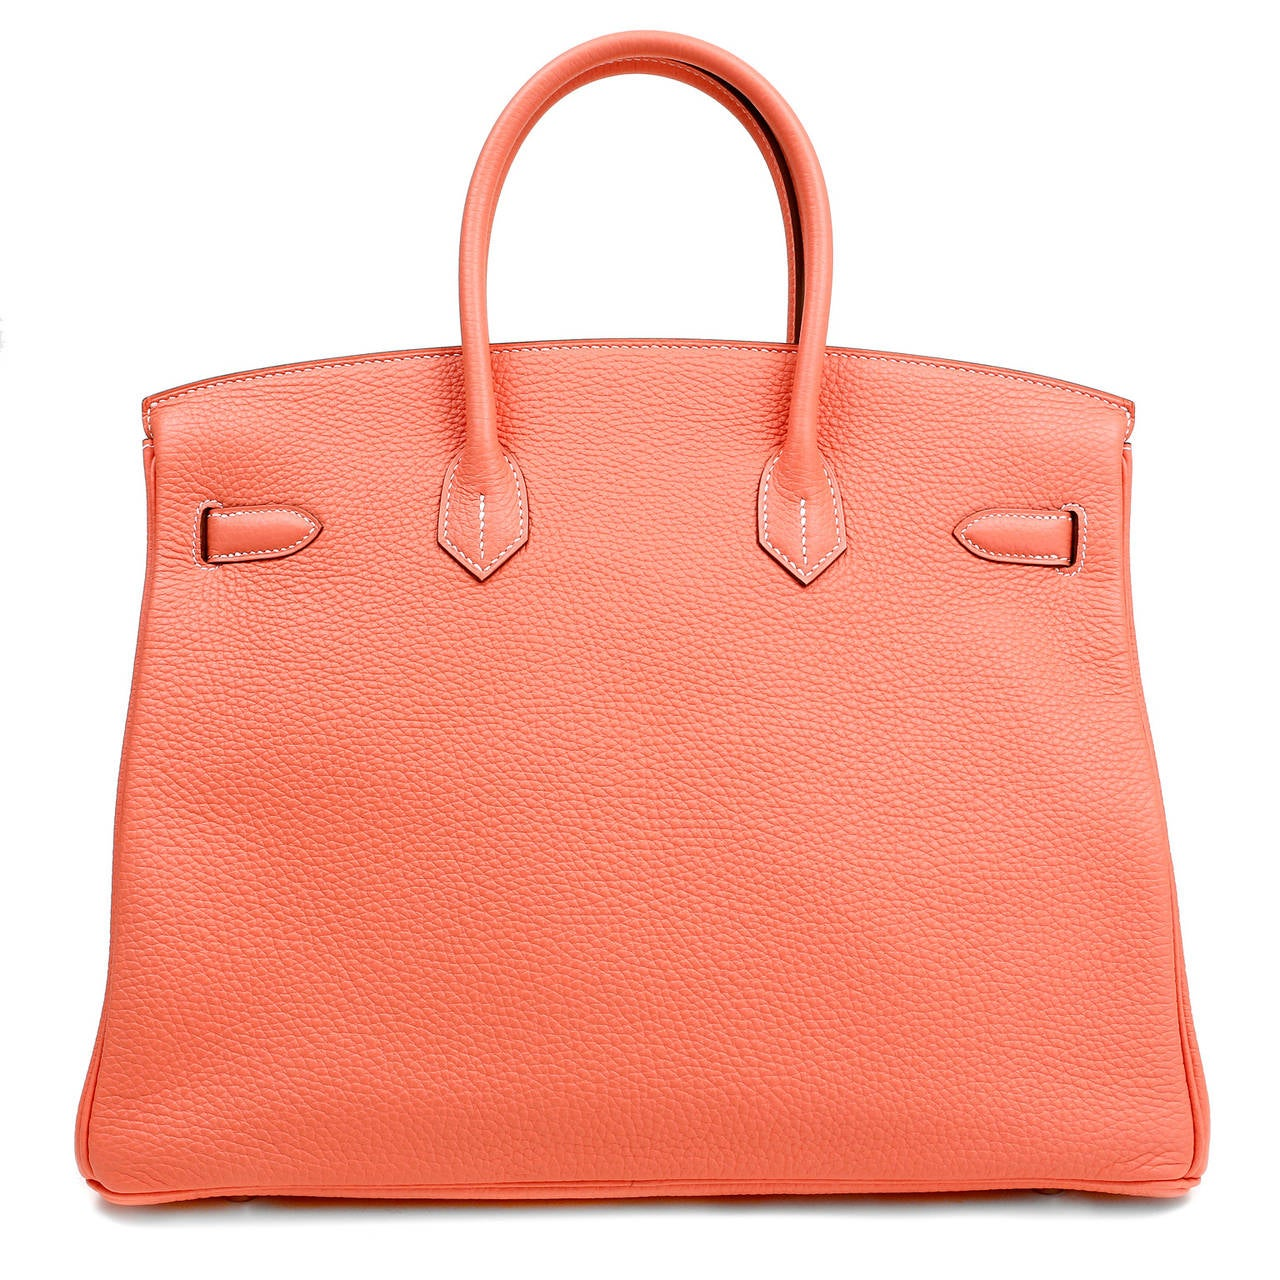 Hermès Crevette Togo 35 cm Birkin- PRISTINE unworn condition with the protective plastic intact on the hardware.     Hand stitched by skilled craftsmen, wait lists of a year or more are commonplace for the intensely coveted Birkin.  This